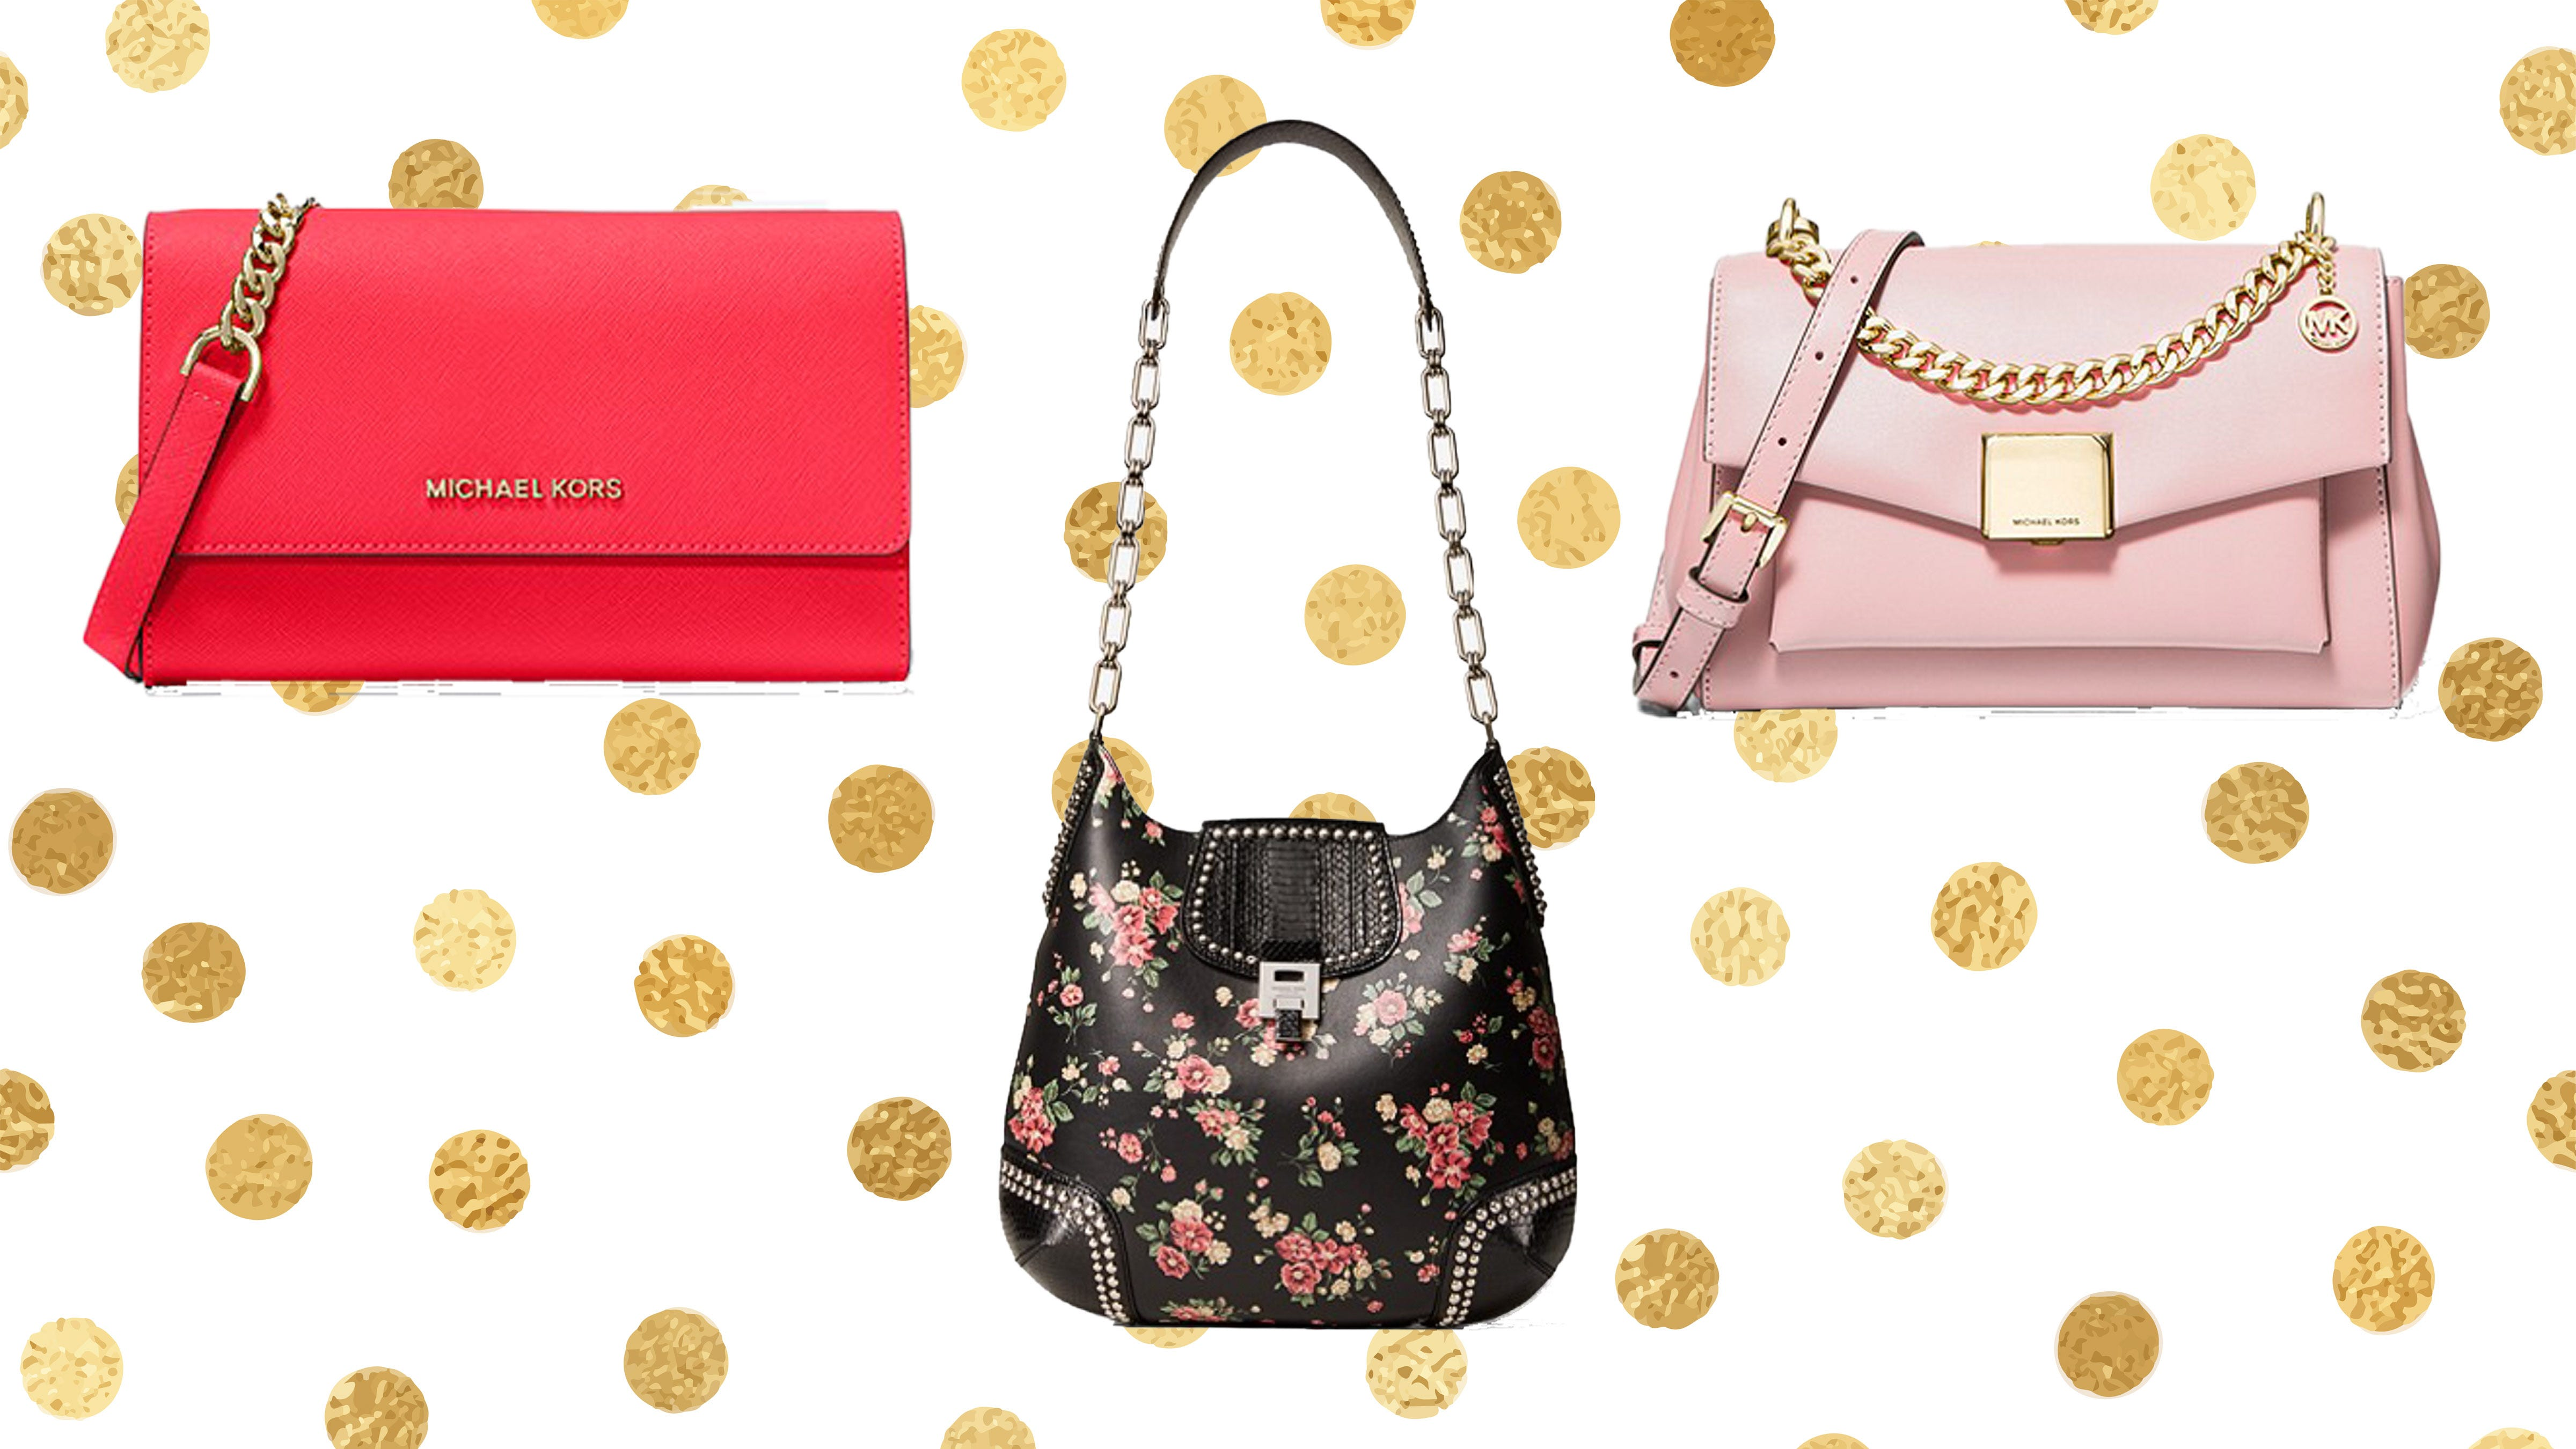 This is your chance to snag a Michael Kors purse at a huge discount—shop our top picks